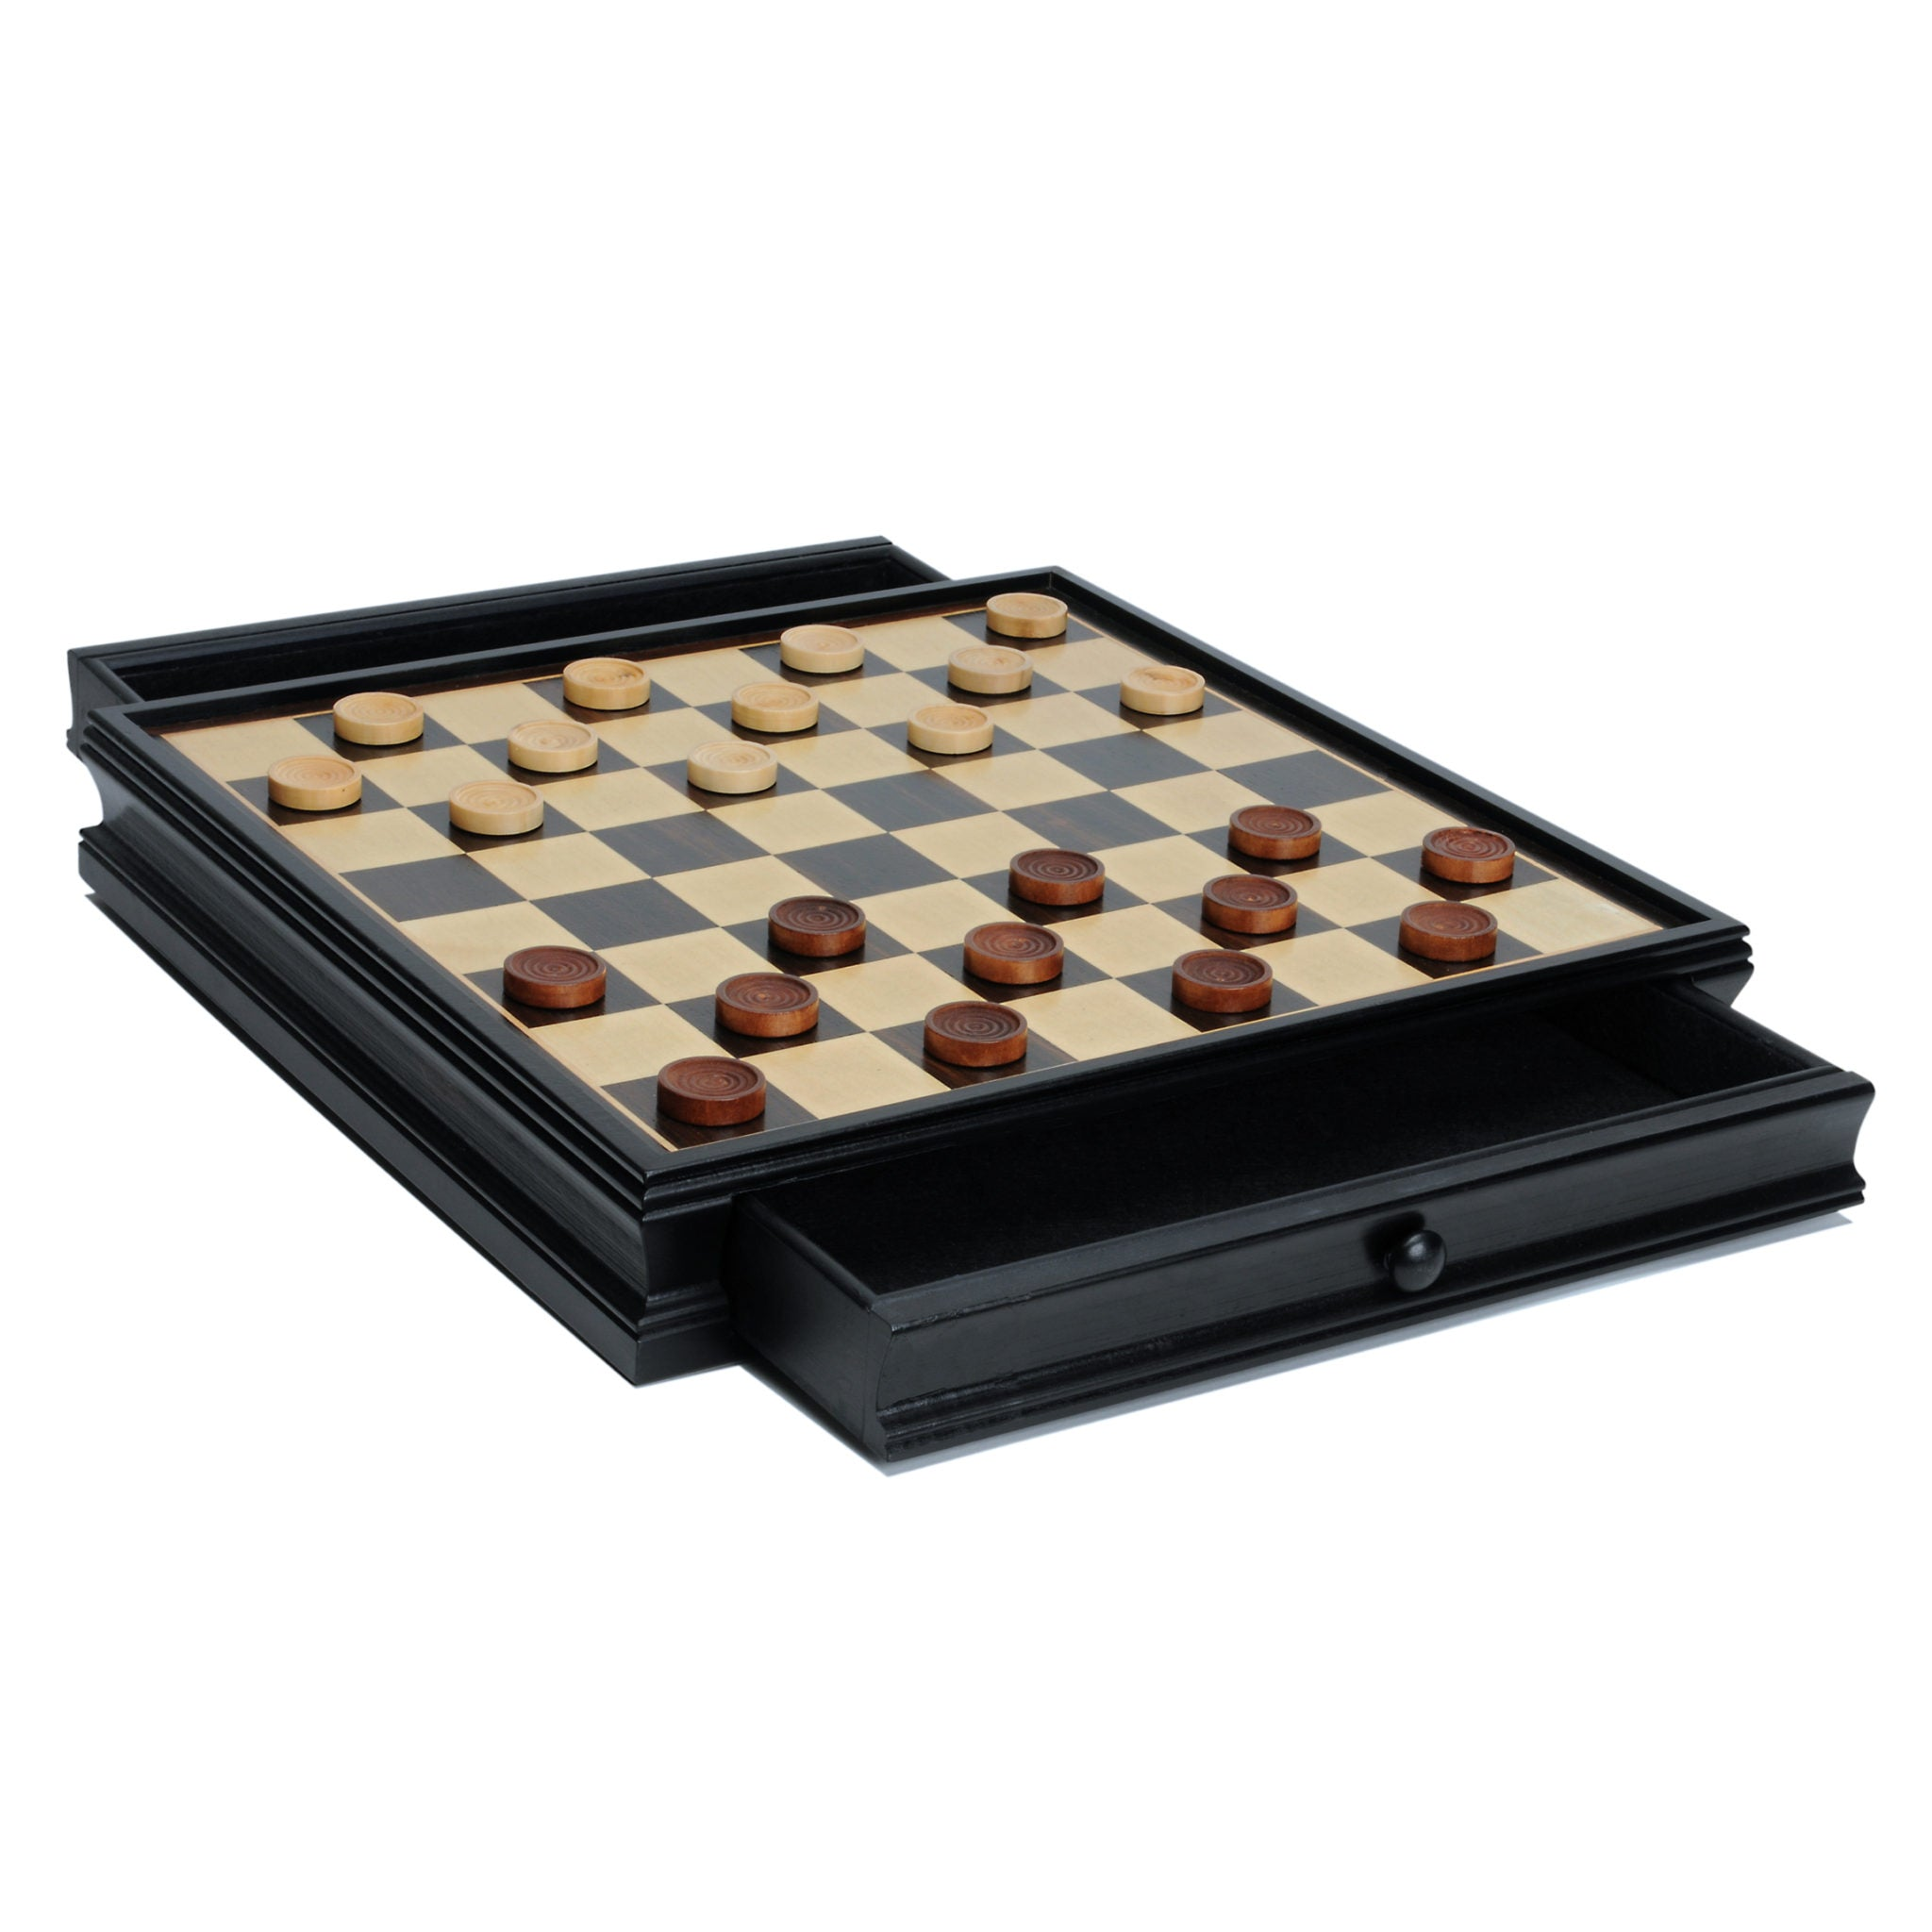 "Medieval Chess & Checkers 15"" Game Set"